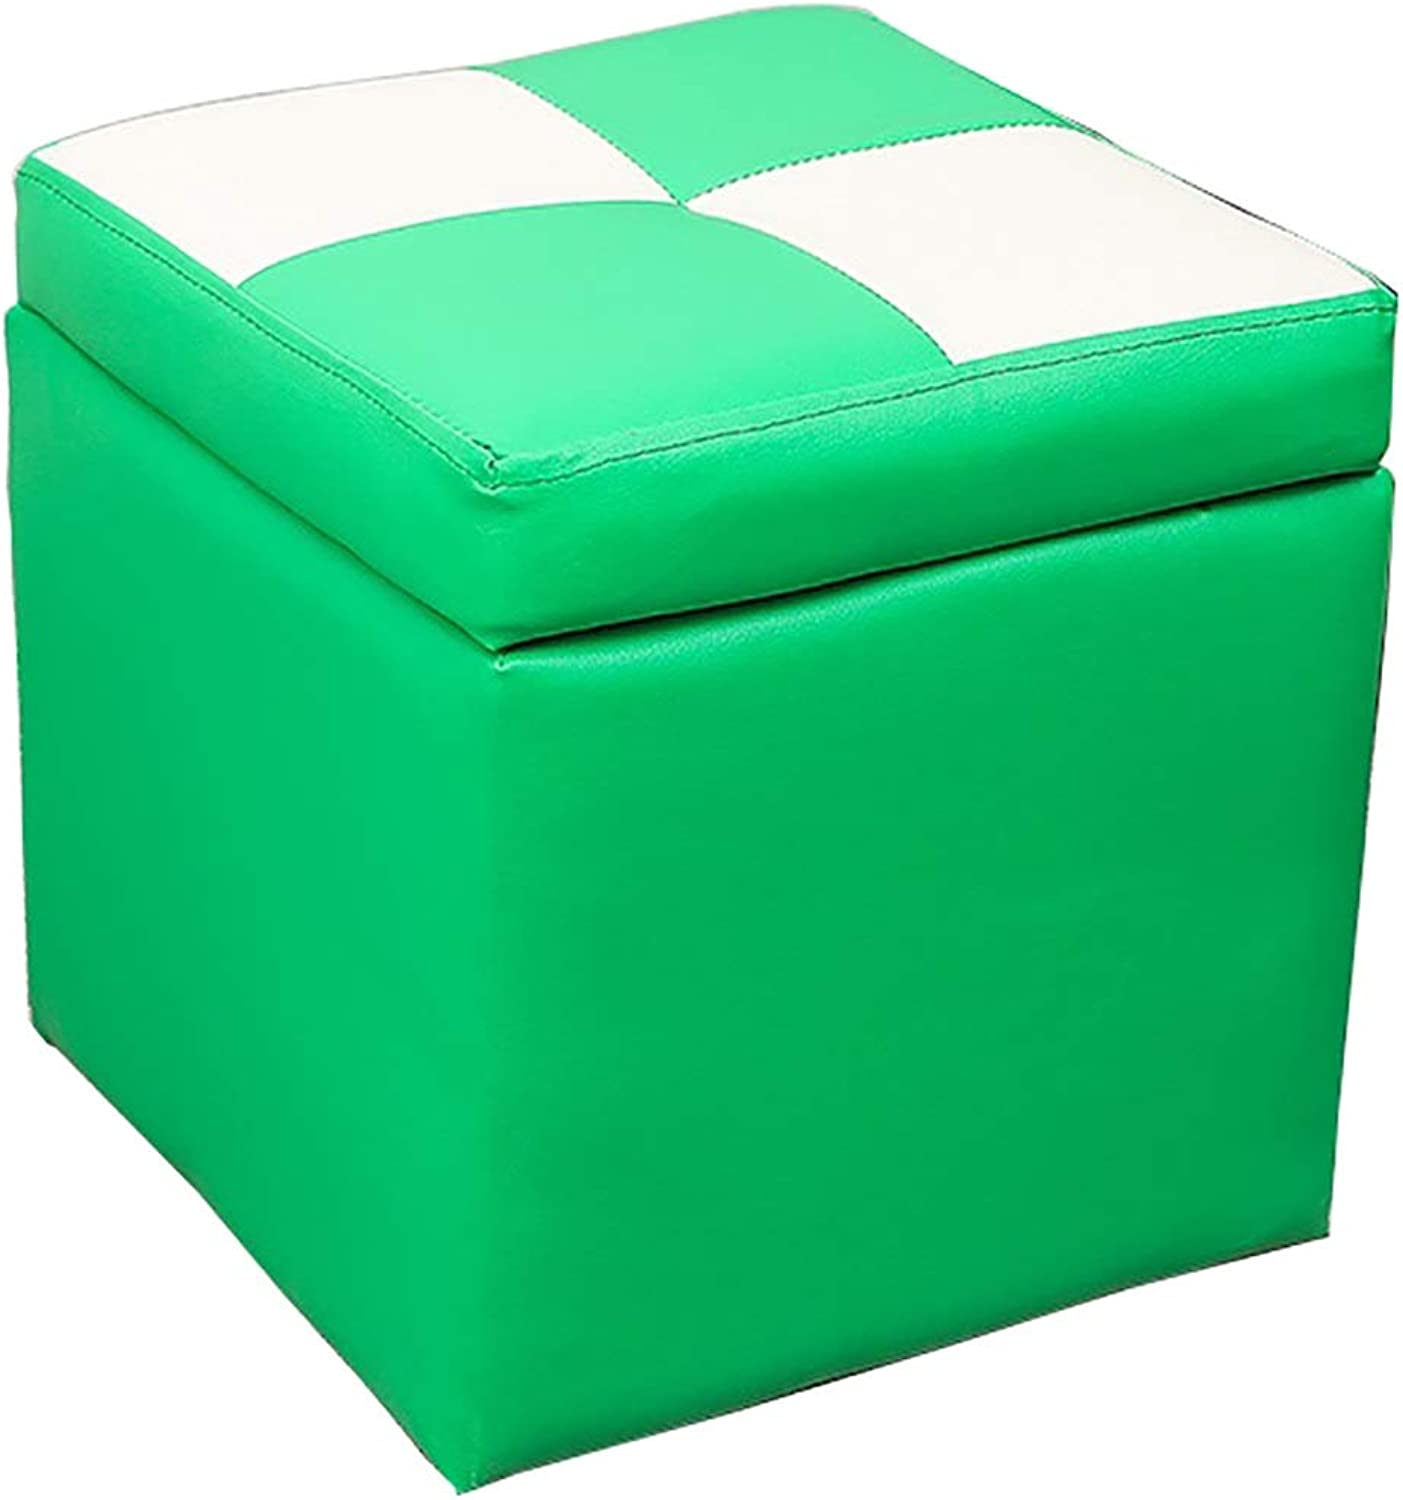 CAIJUN Footstool Waterproof Indoor Storage Comfortable Solid Wood Frame Multifunction, 7 colors (color   Green, Size   30x30x32cm)